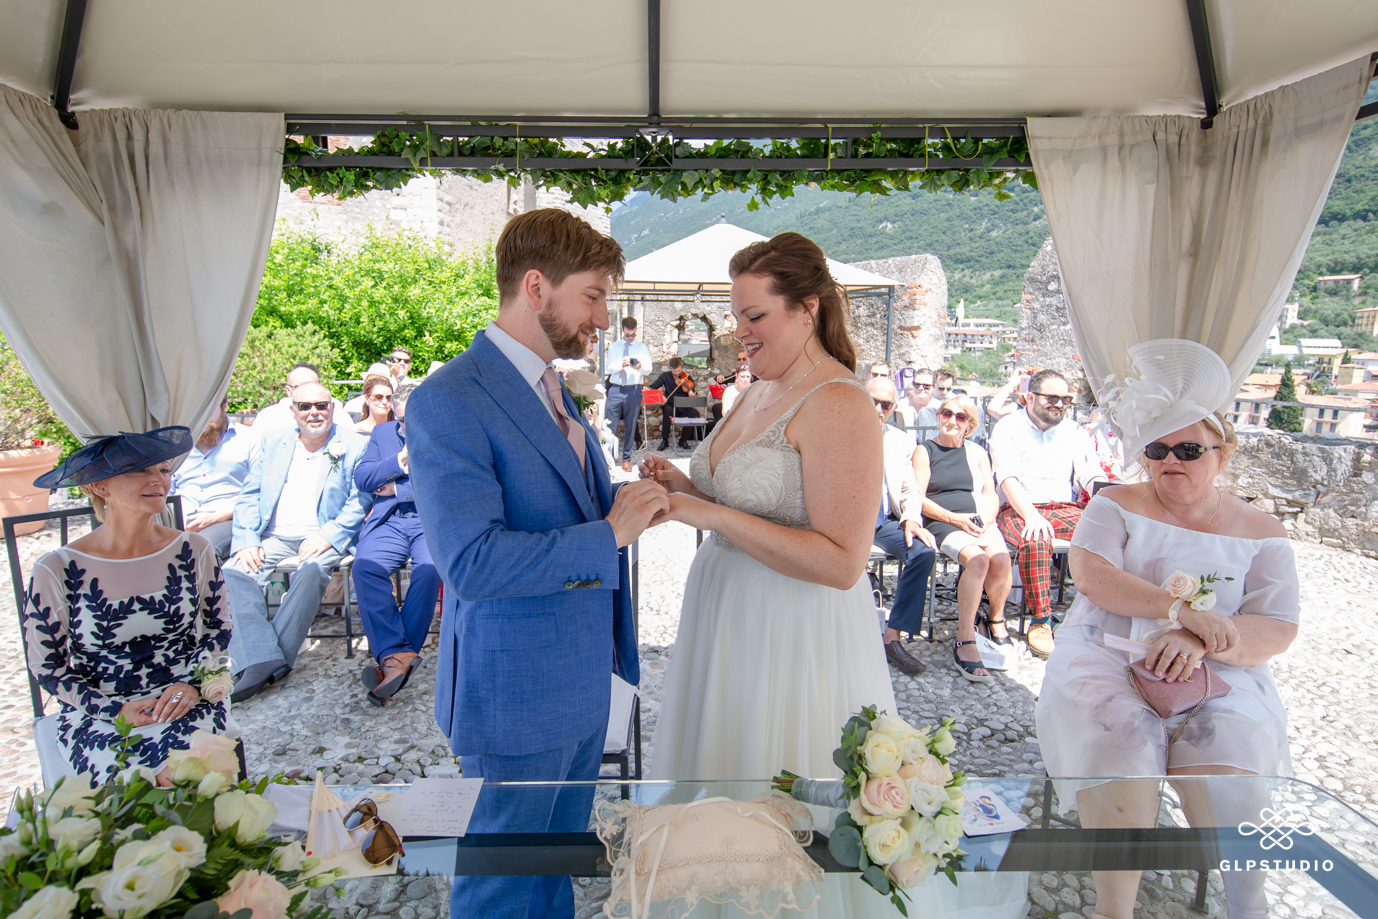 Professional wedding photographer. Wedding at the Scaliger Castle of Malcesine on Lake Garda, Verona